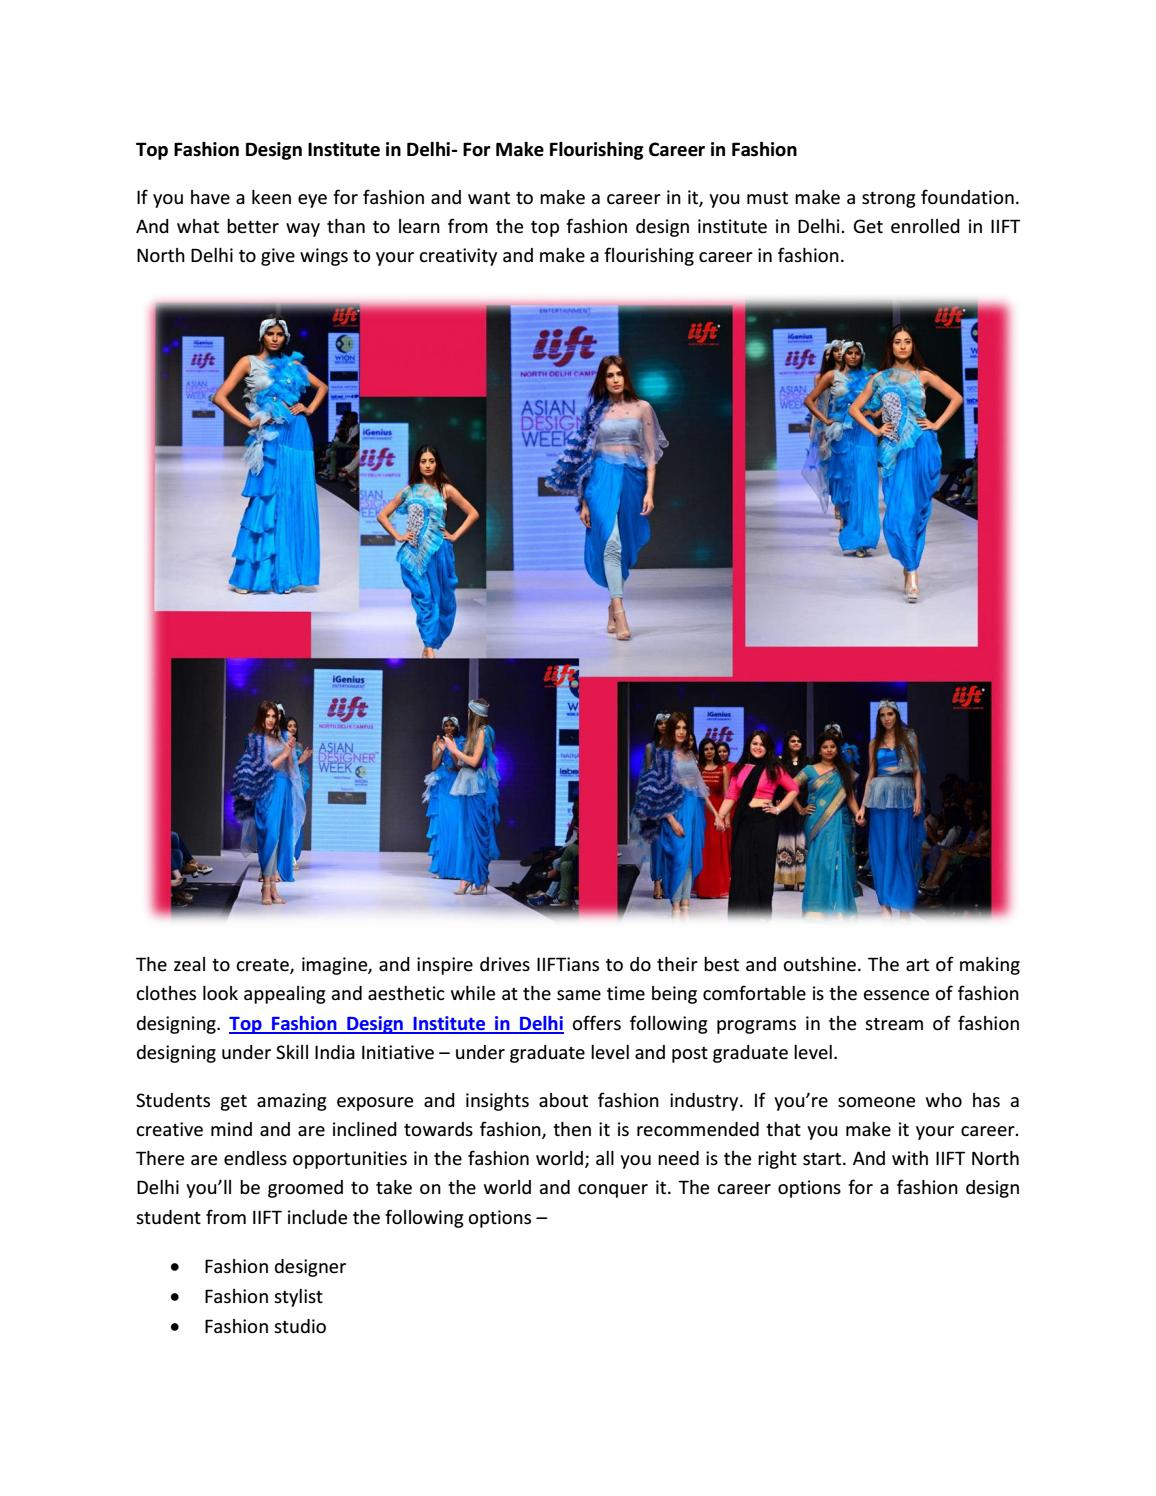 Top Fashion Design Institute In Delhi For Make Flourishing Career In Fashion By Webmasteriiftnorthdelhi Issuu